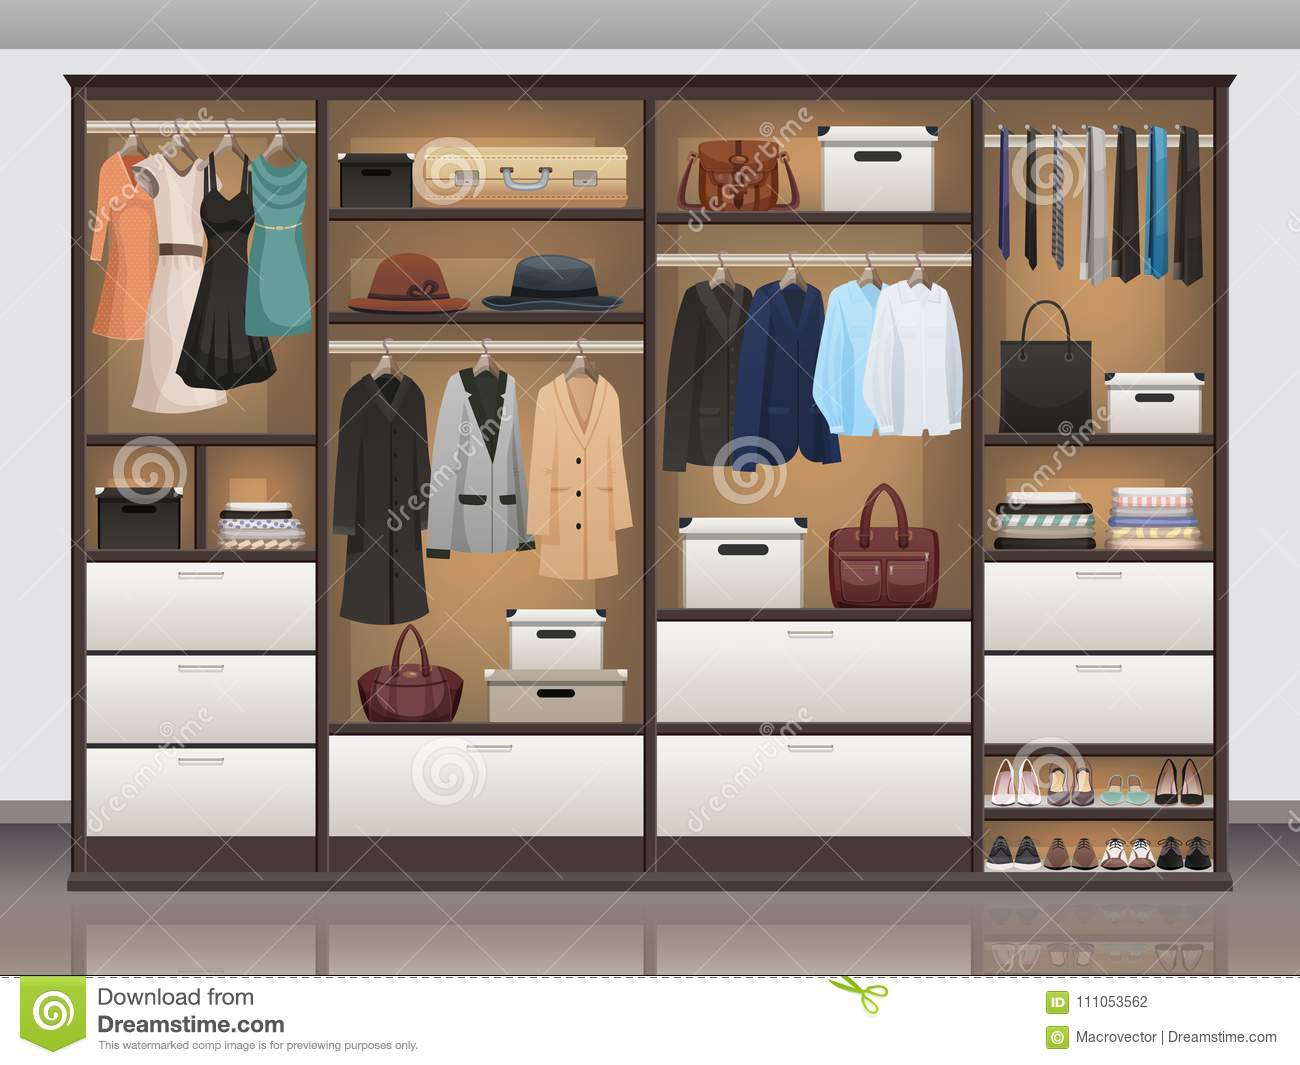 amp smart absolutely of top ideas storage closet hanging wardrobe photo pic cloth wadrobe